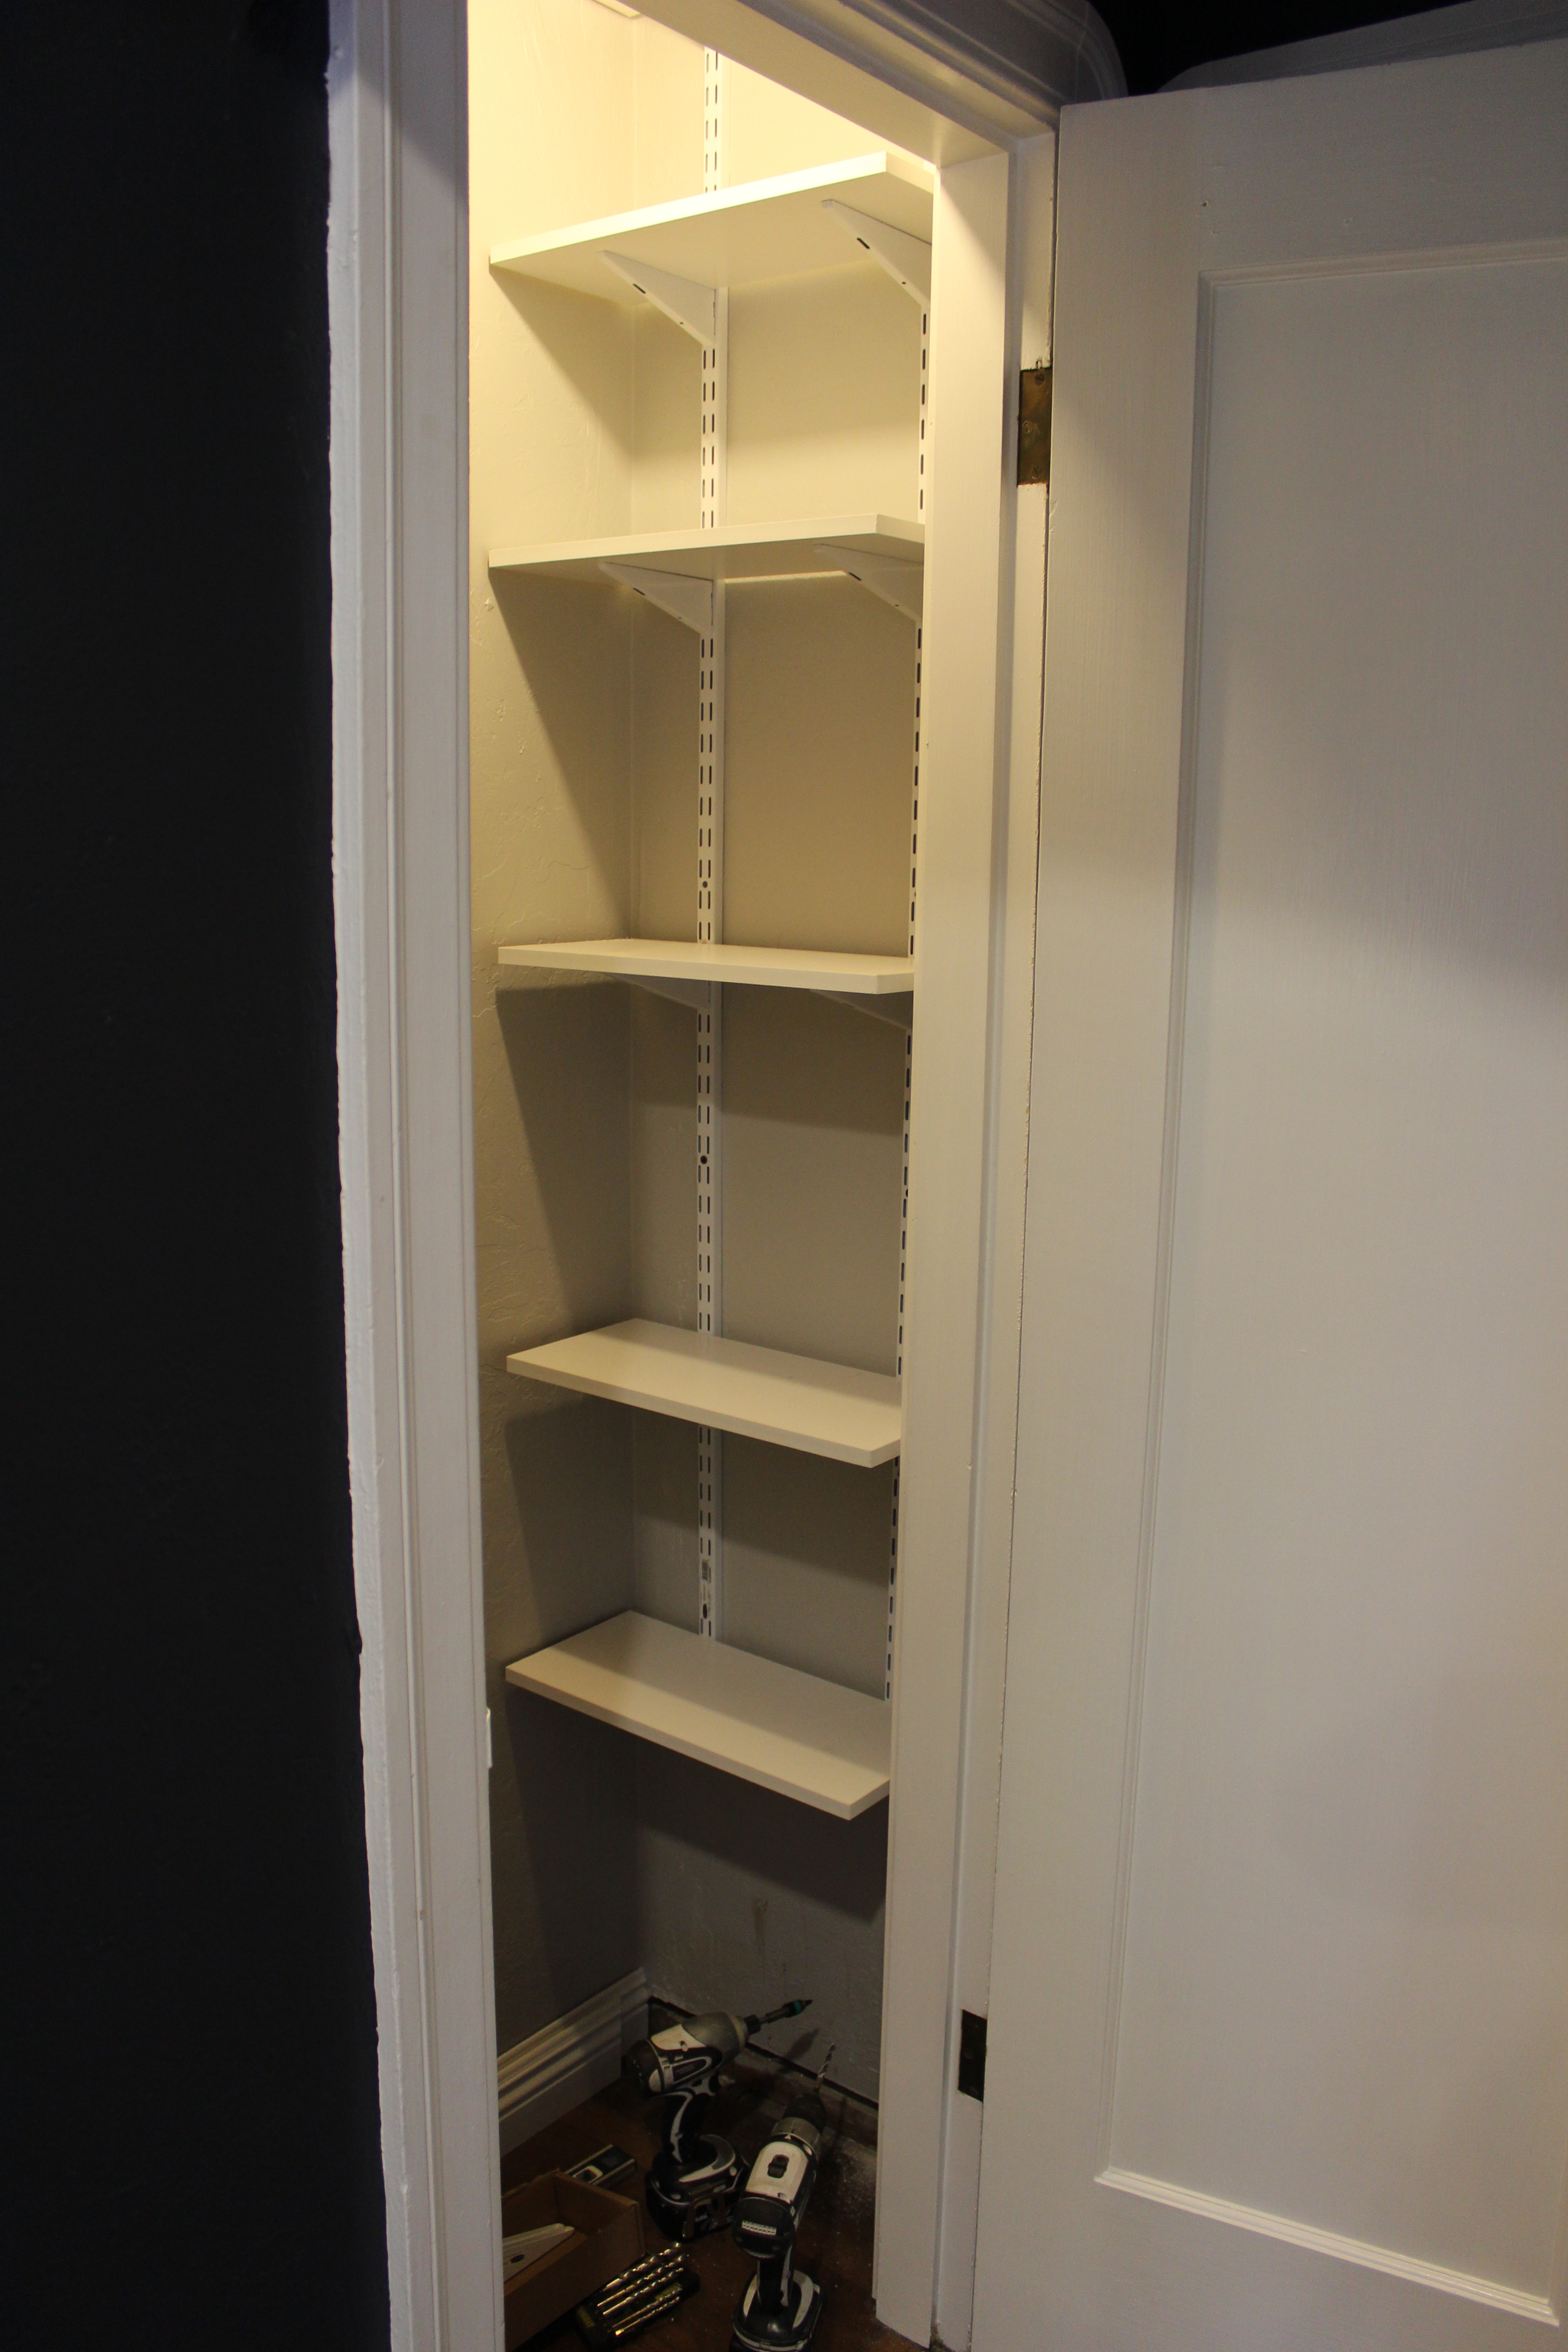 design bars blog up closet meryl services what llc re to page img handyman and miller we